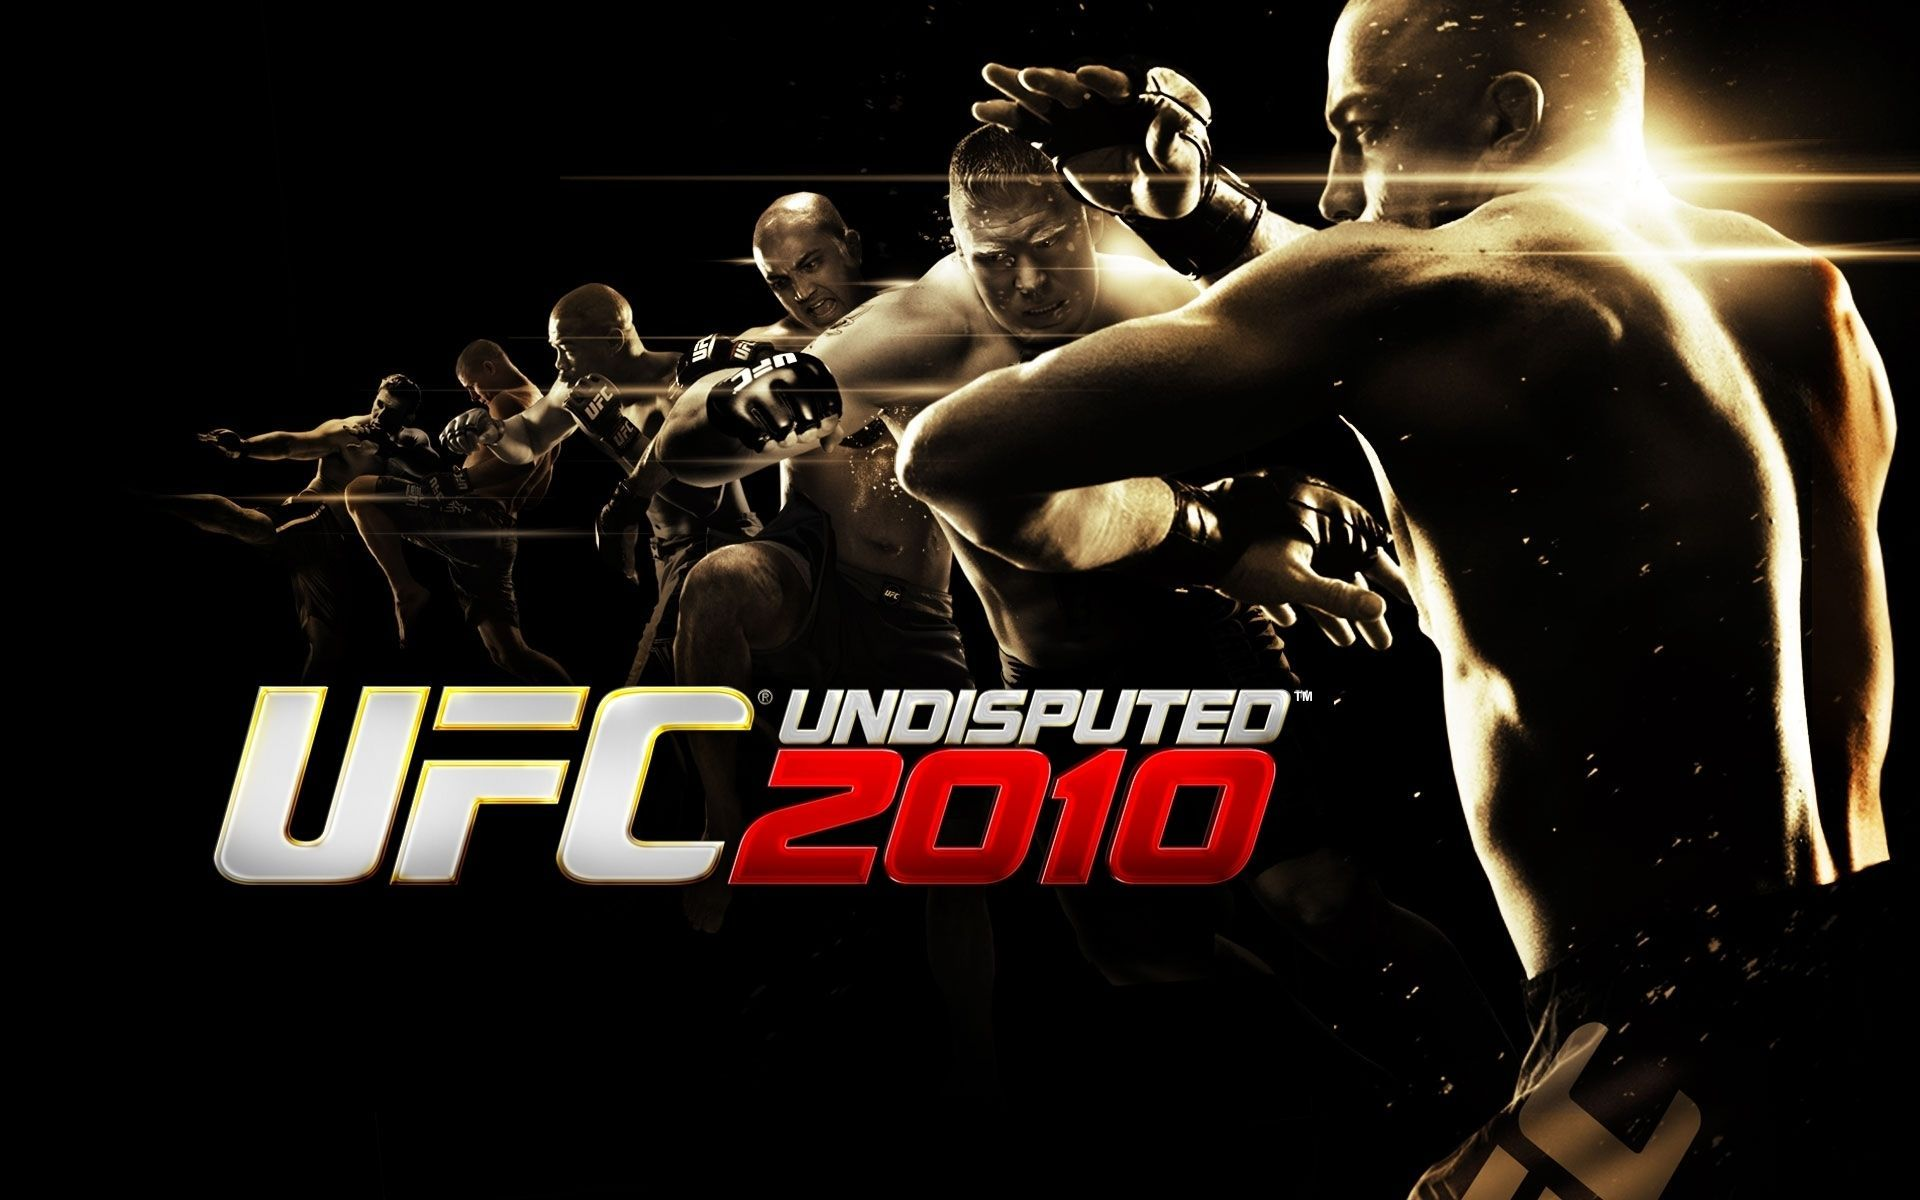 Ufc Wallpapers 1080p 9K815Y1   4USkY 1920x1200